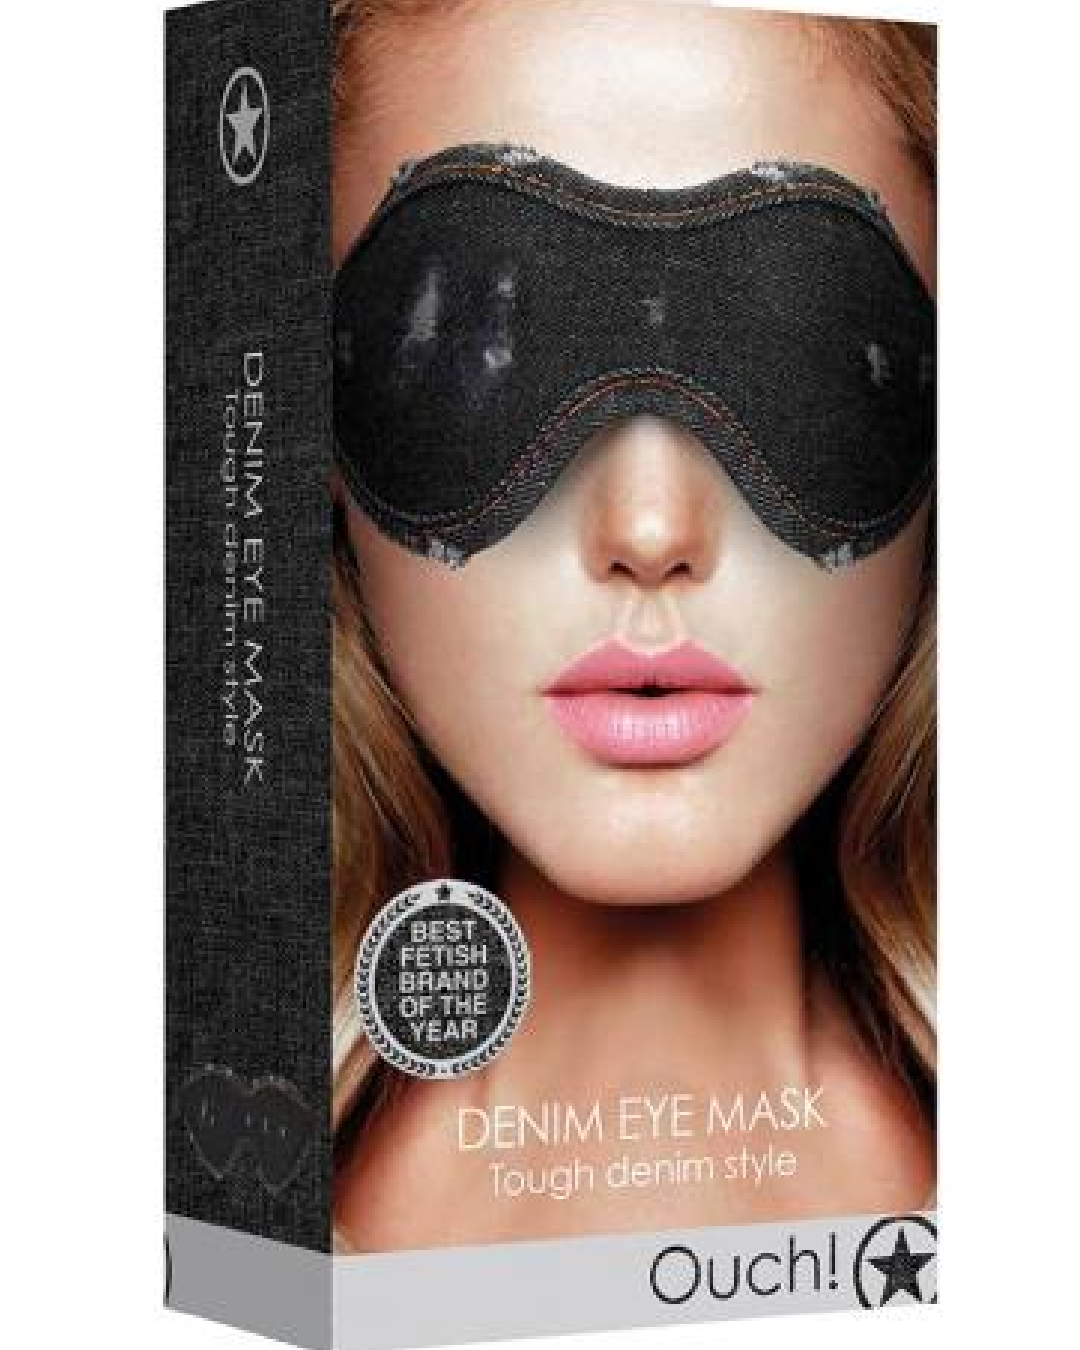 Ouch!  Denim Eye Mask - Black  product box